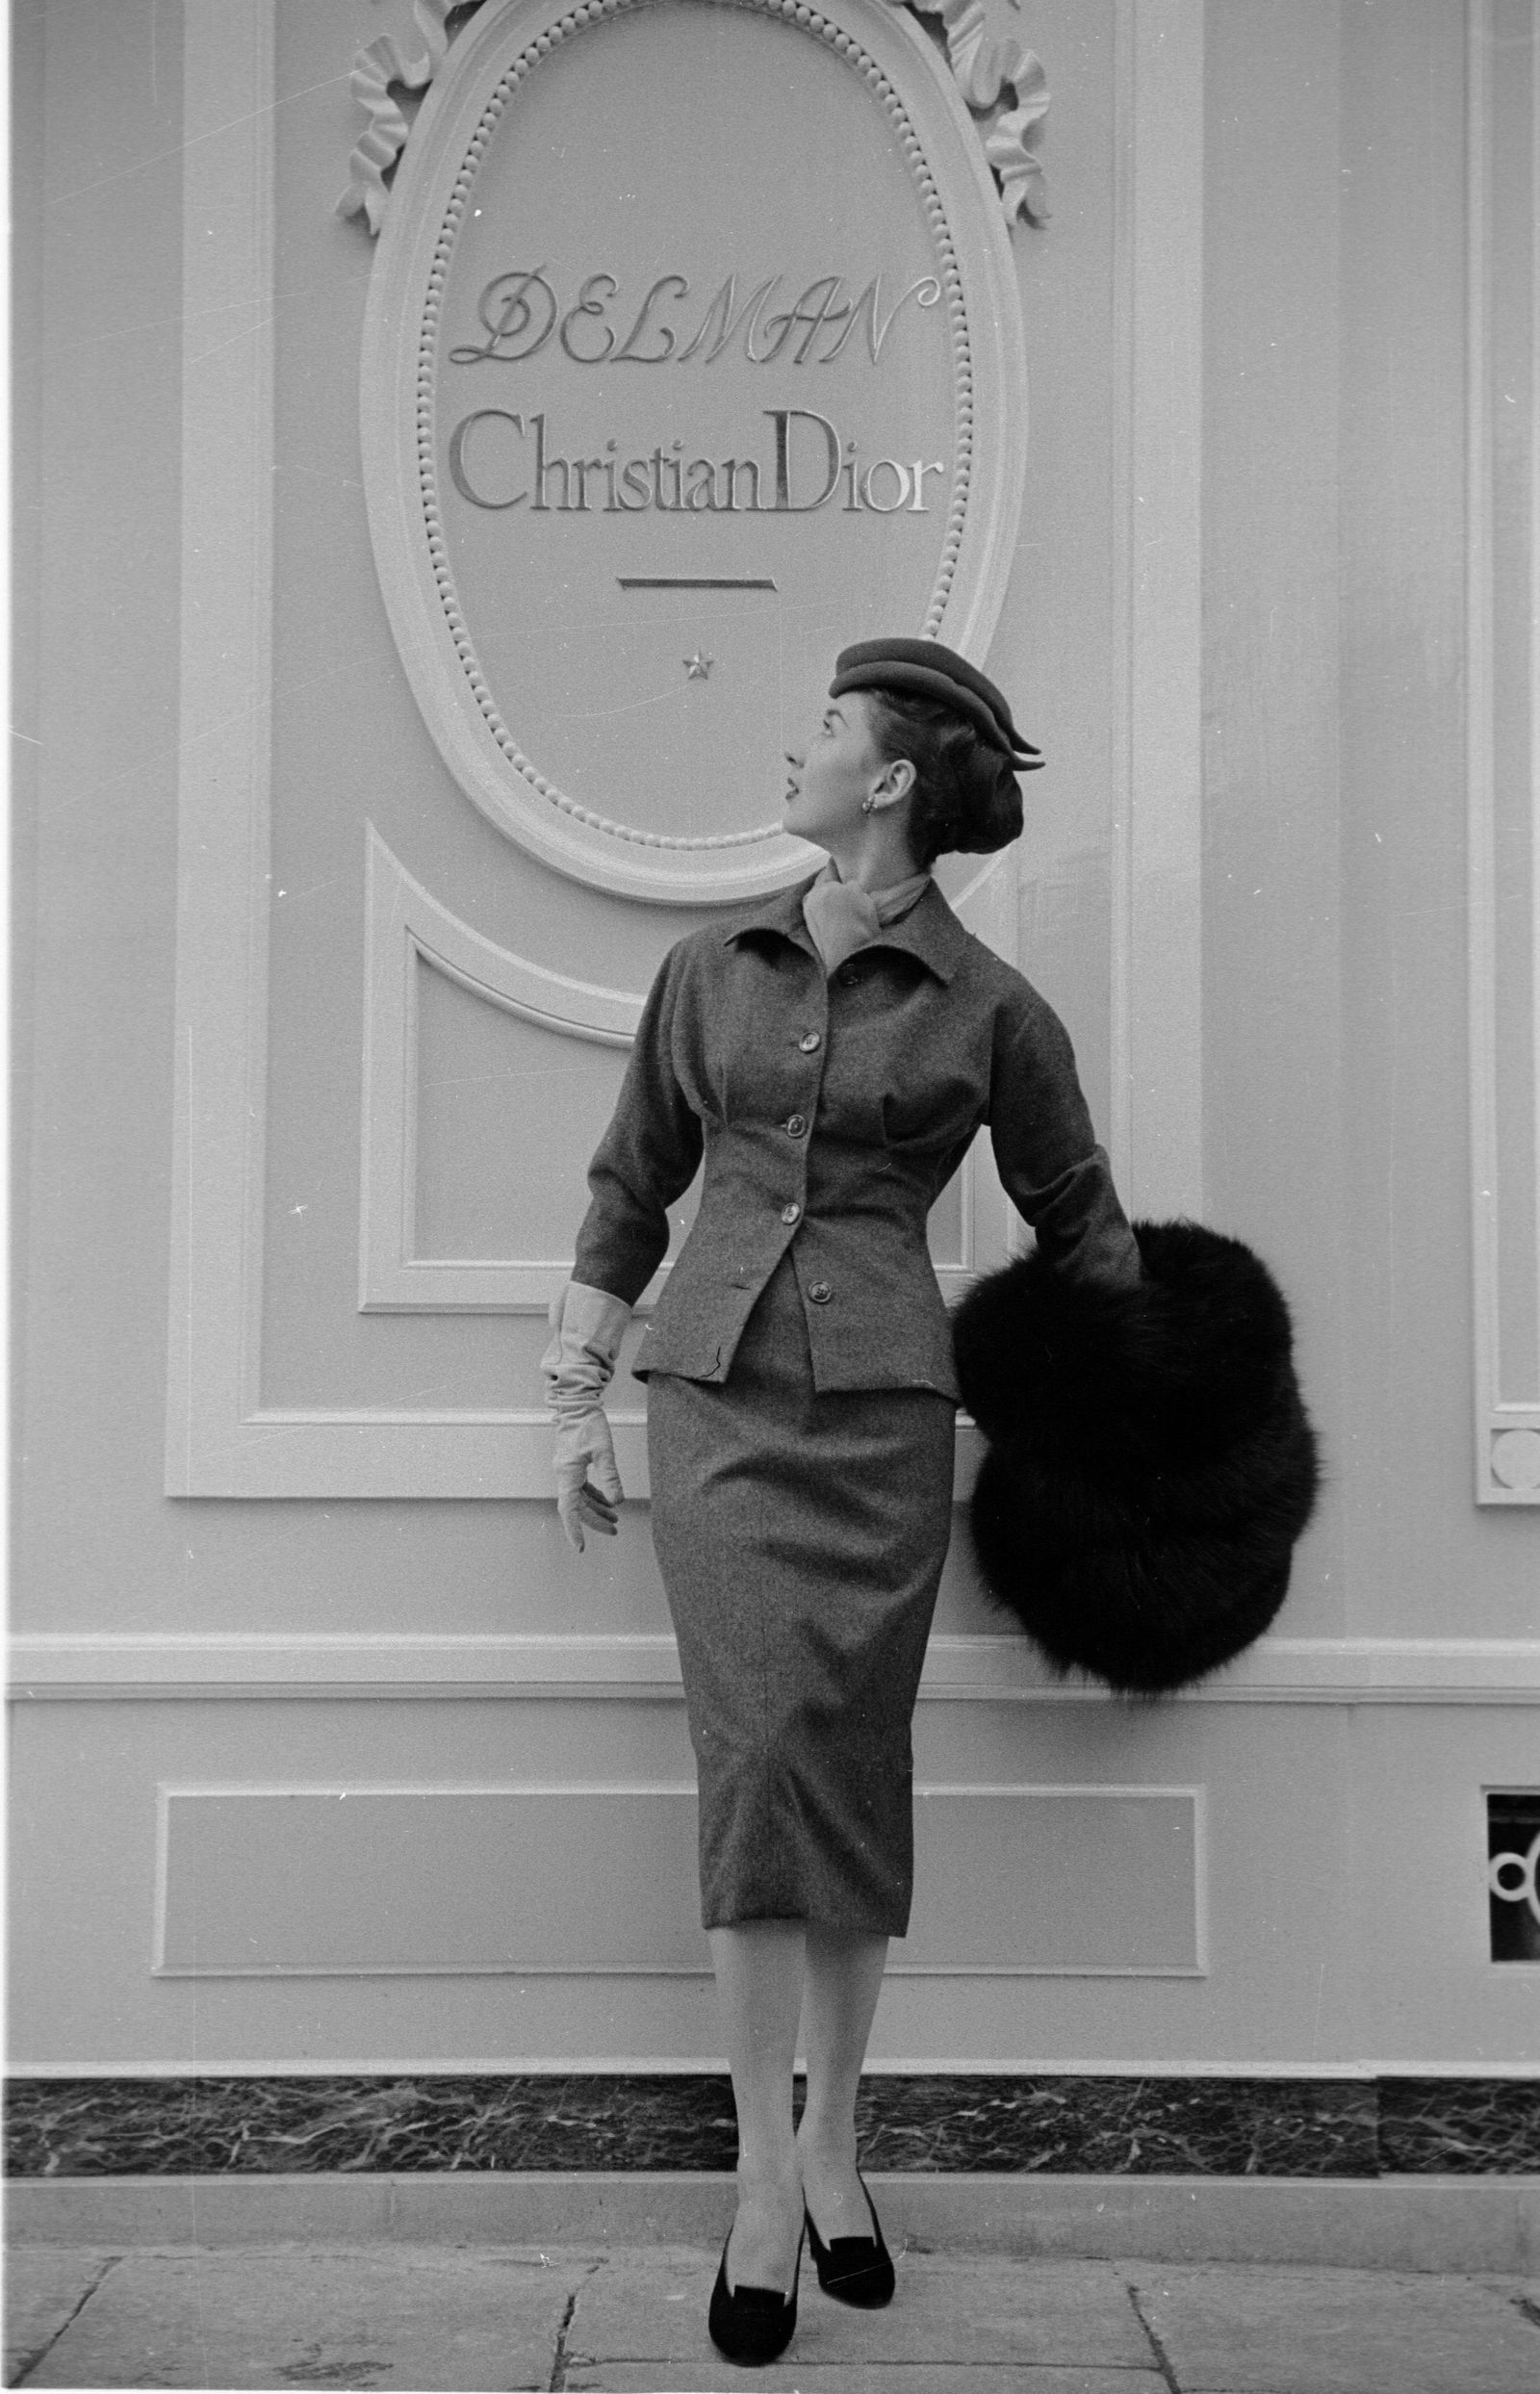 - 1953 - Fur Muffs were really instyle in these days and a popular accessory. -